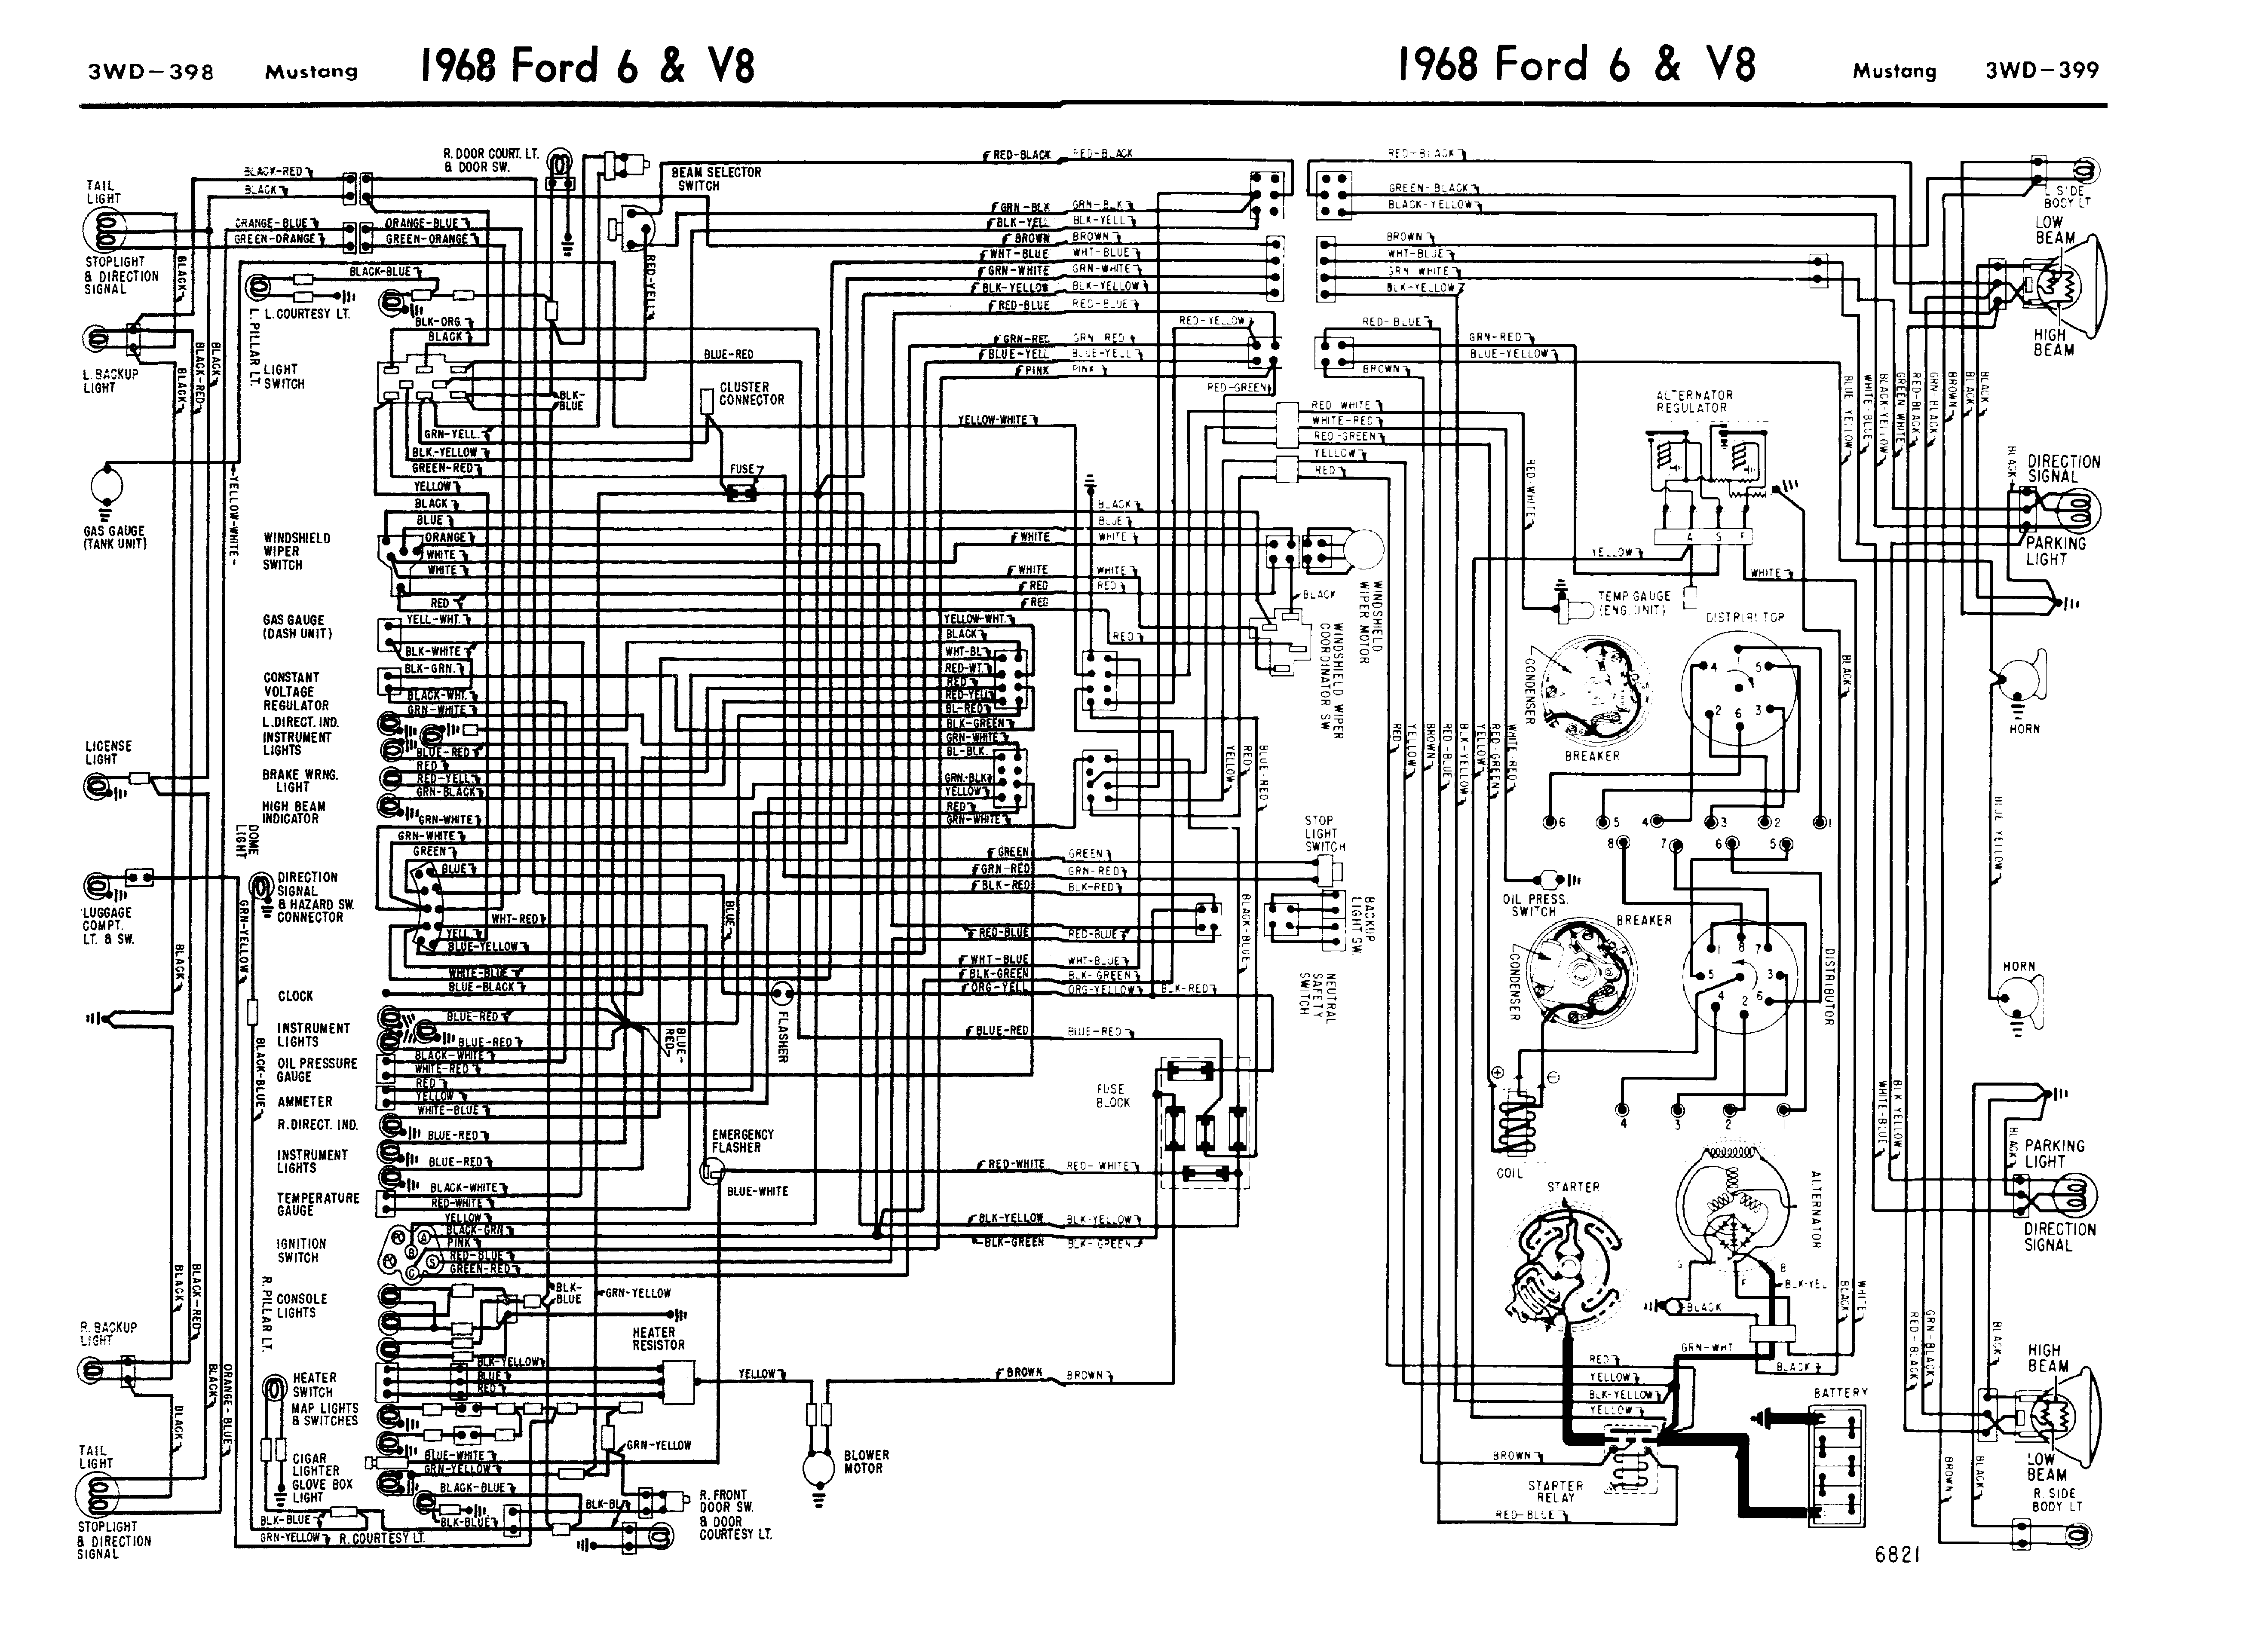 small resolution of 1968 mustang fuse diagram wire management wiring diagram 1968 mustang fuse panel diagram